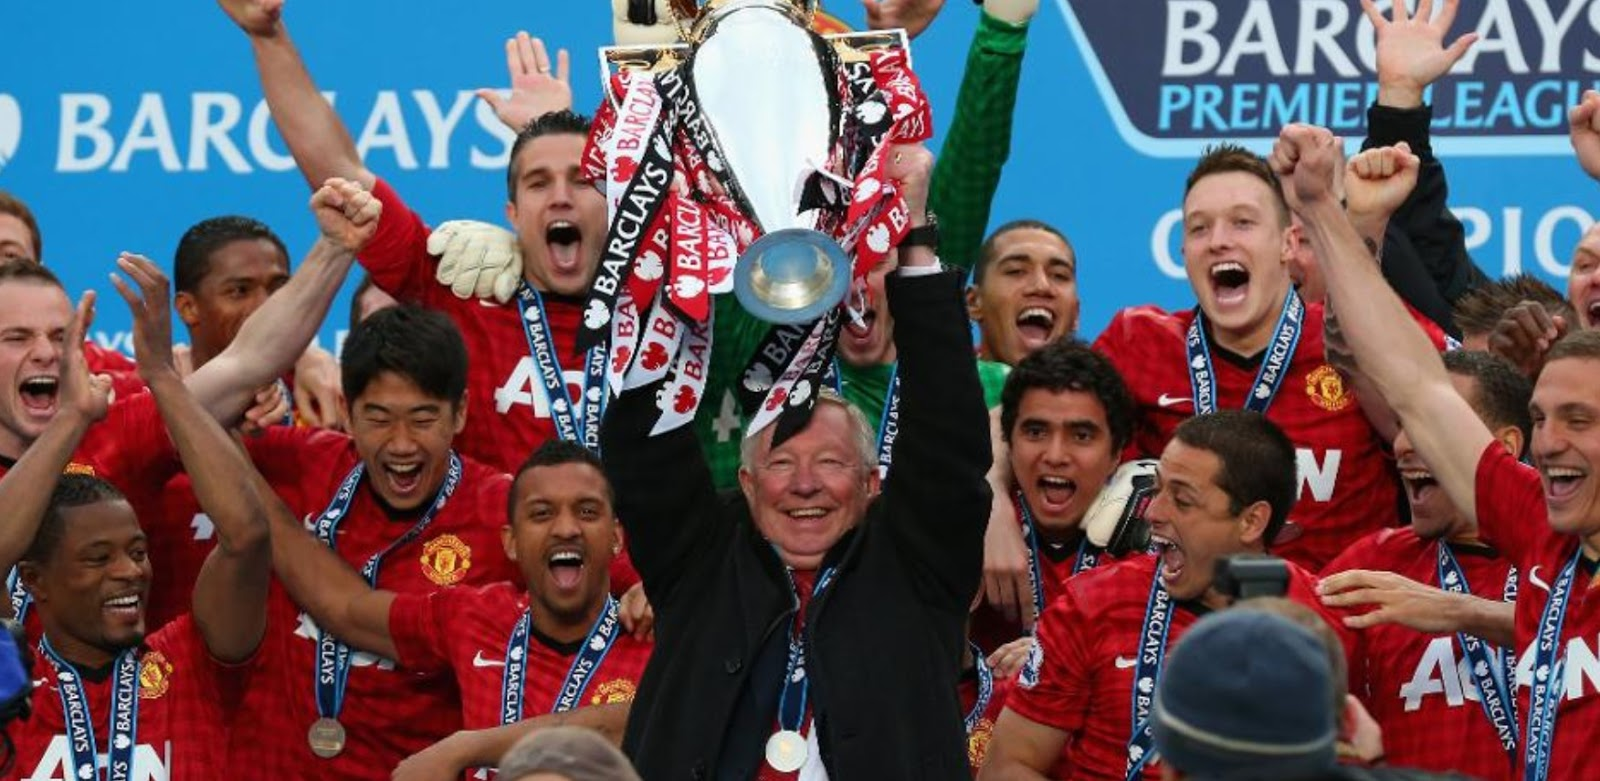 Manchester United EPL Champions 13 times in history